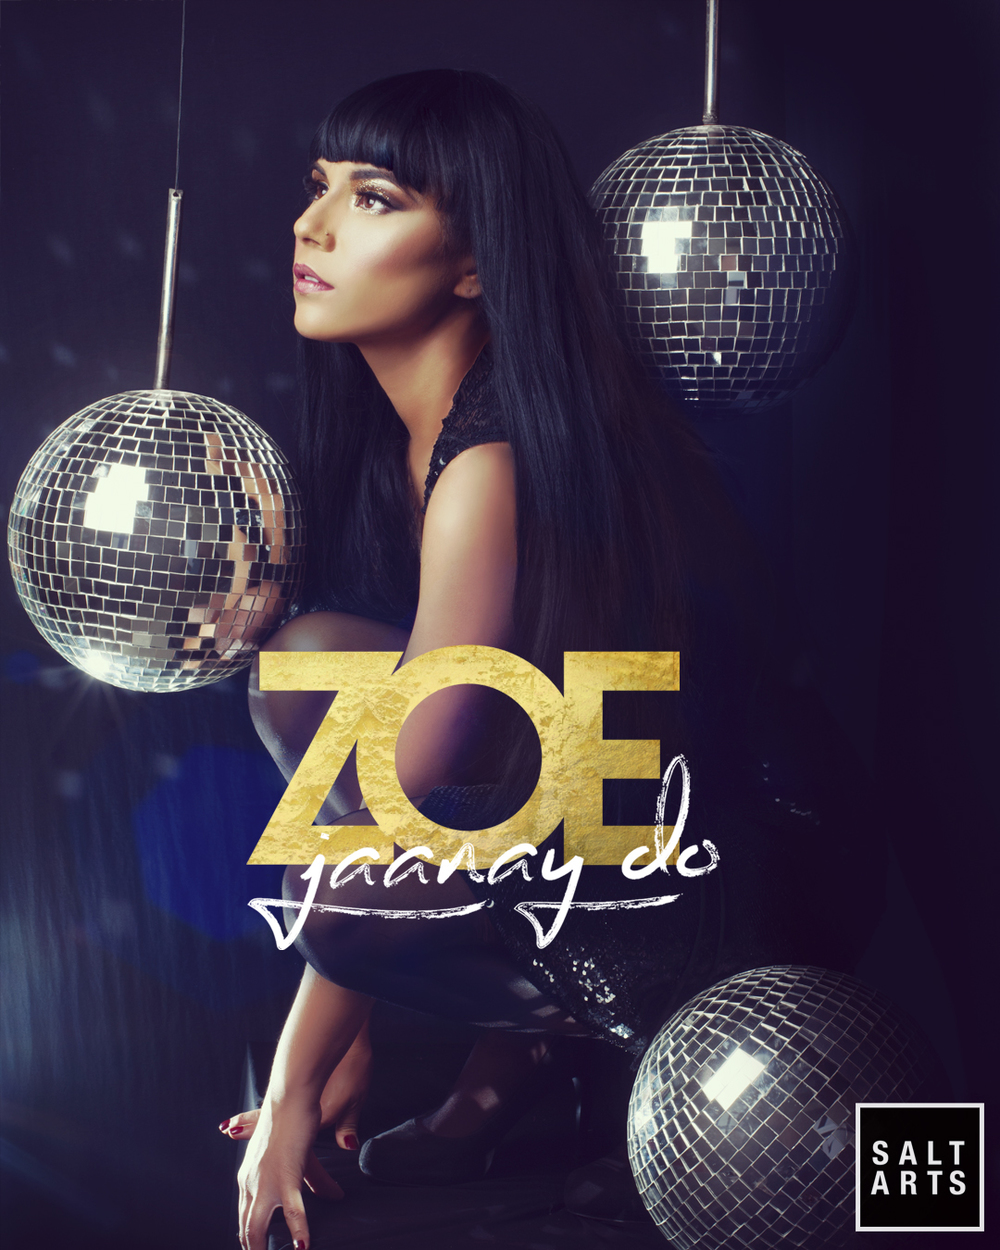 02+Zoe+Viccaji+Jaanay+Do+Disco+ball.jpg